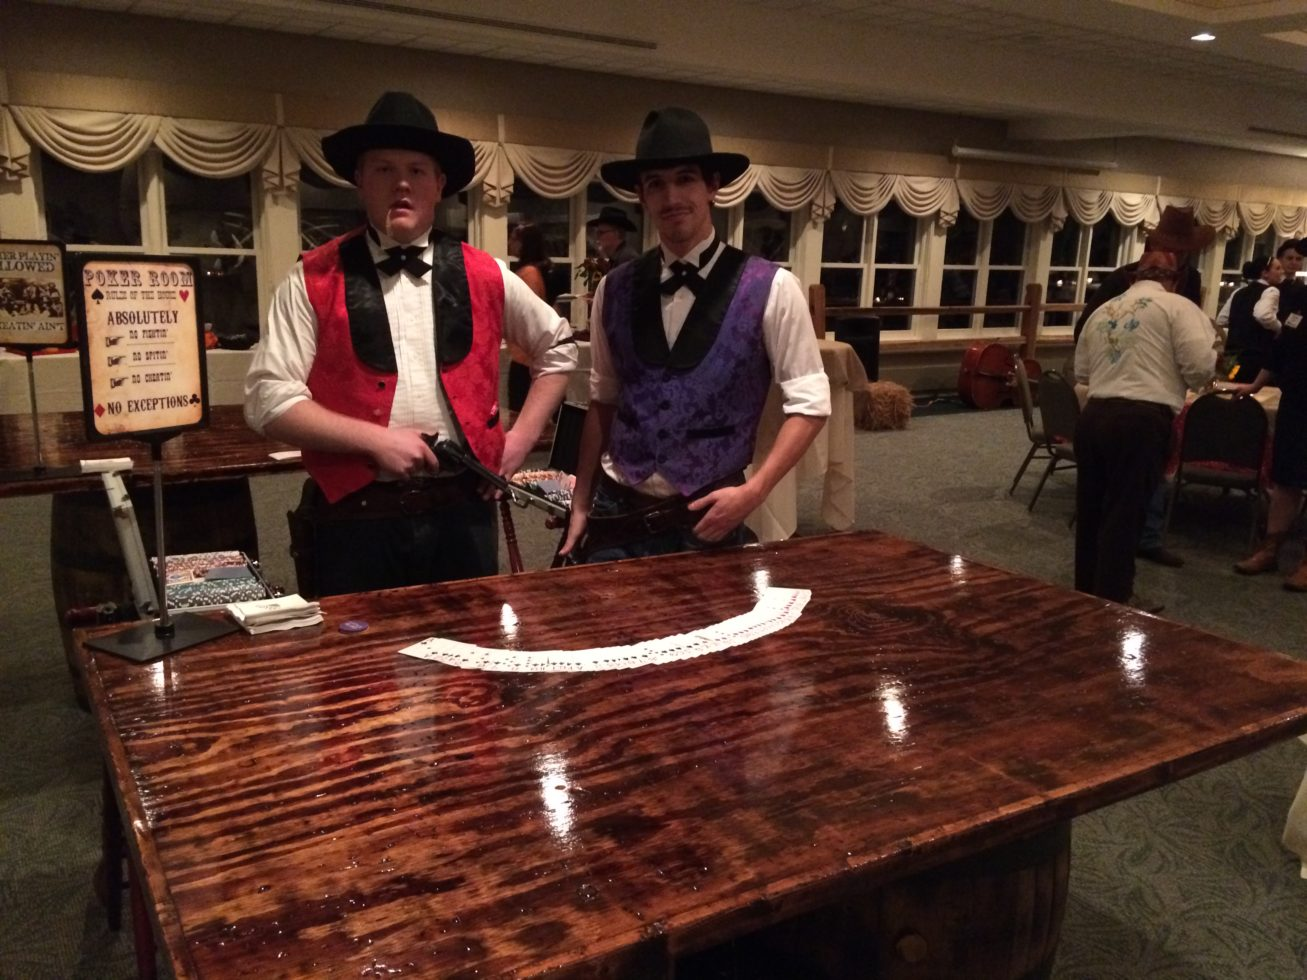 Custom built poker tables with saloon cowboy poker dealers